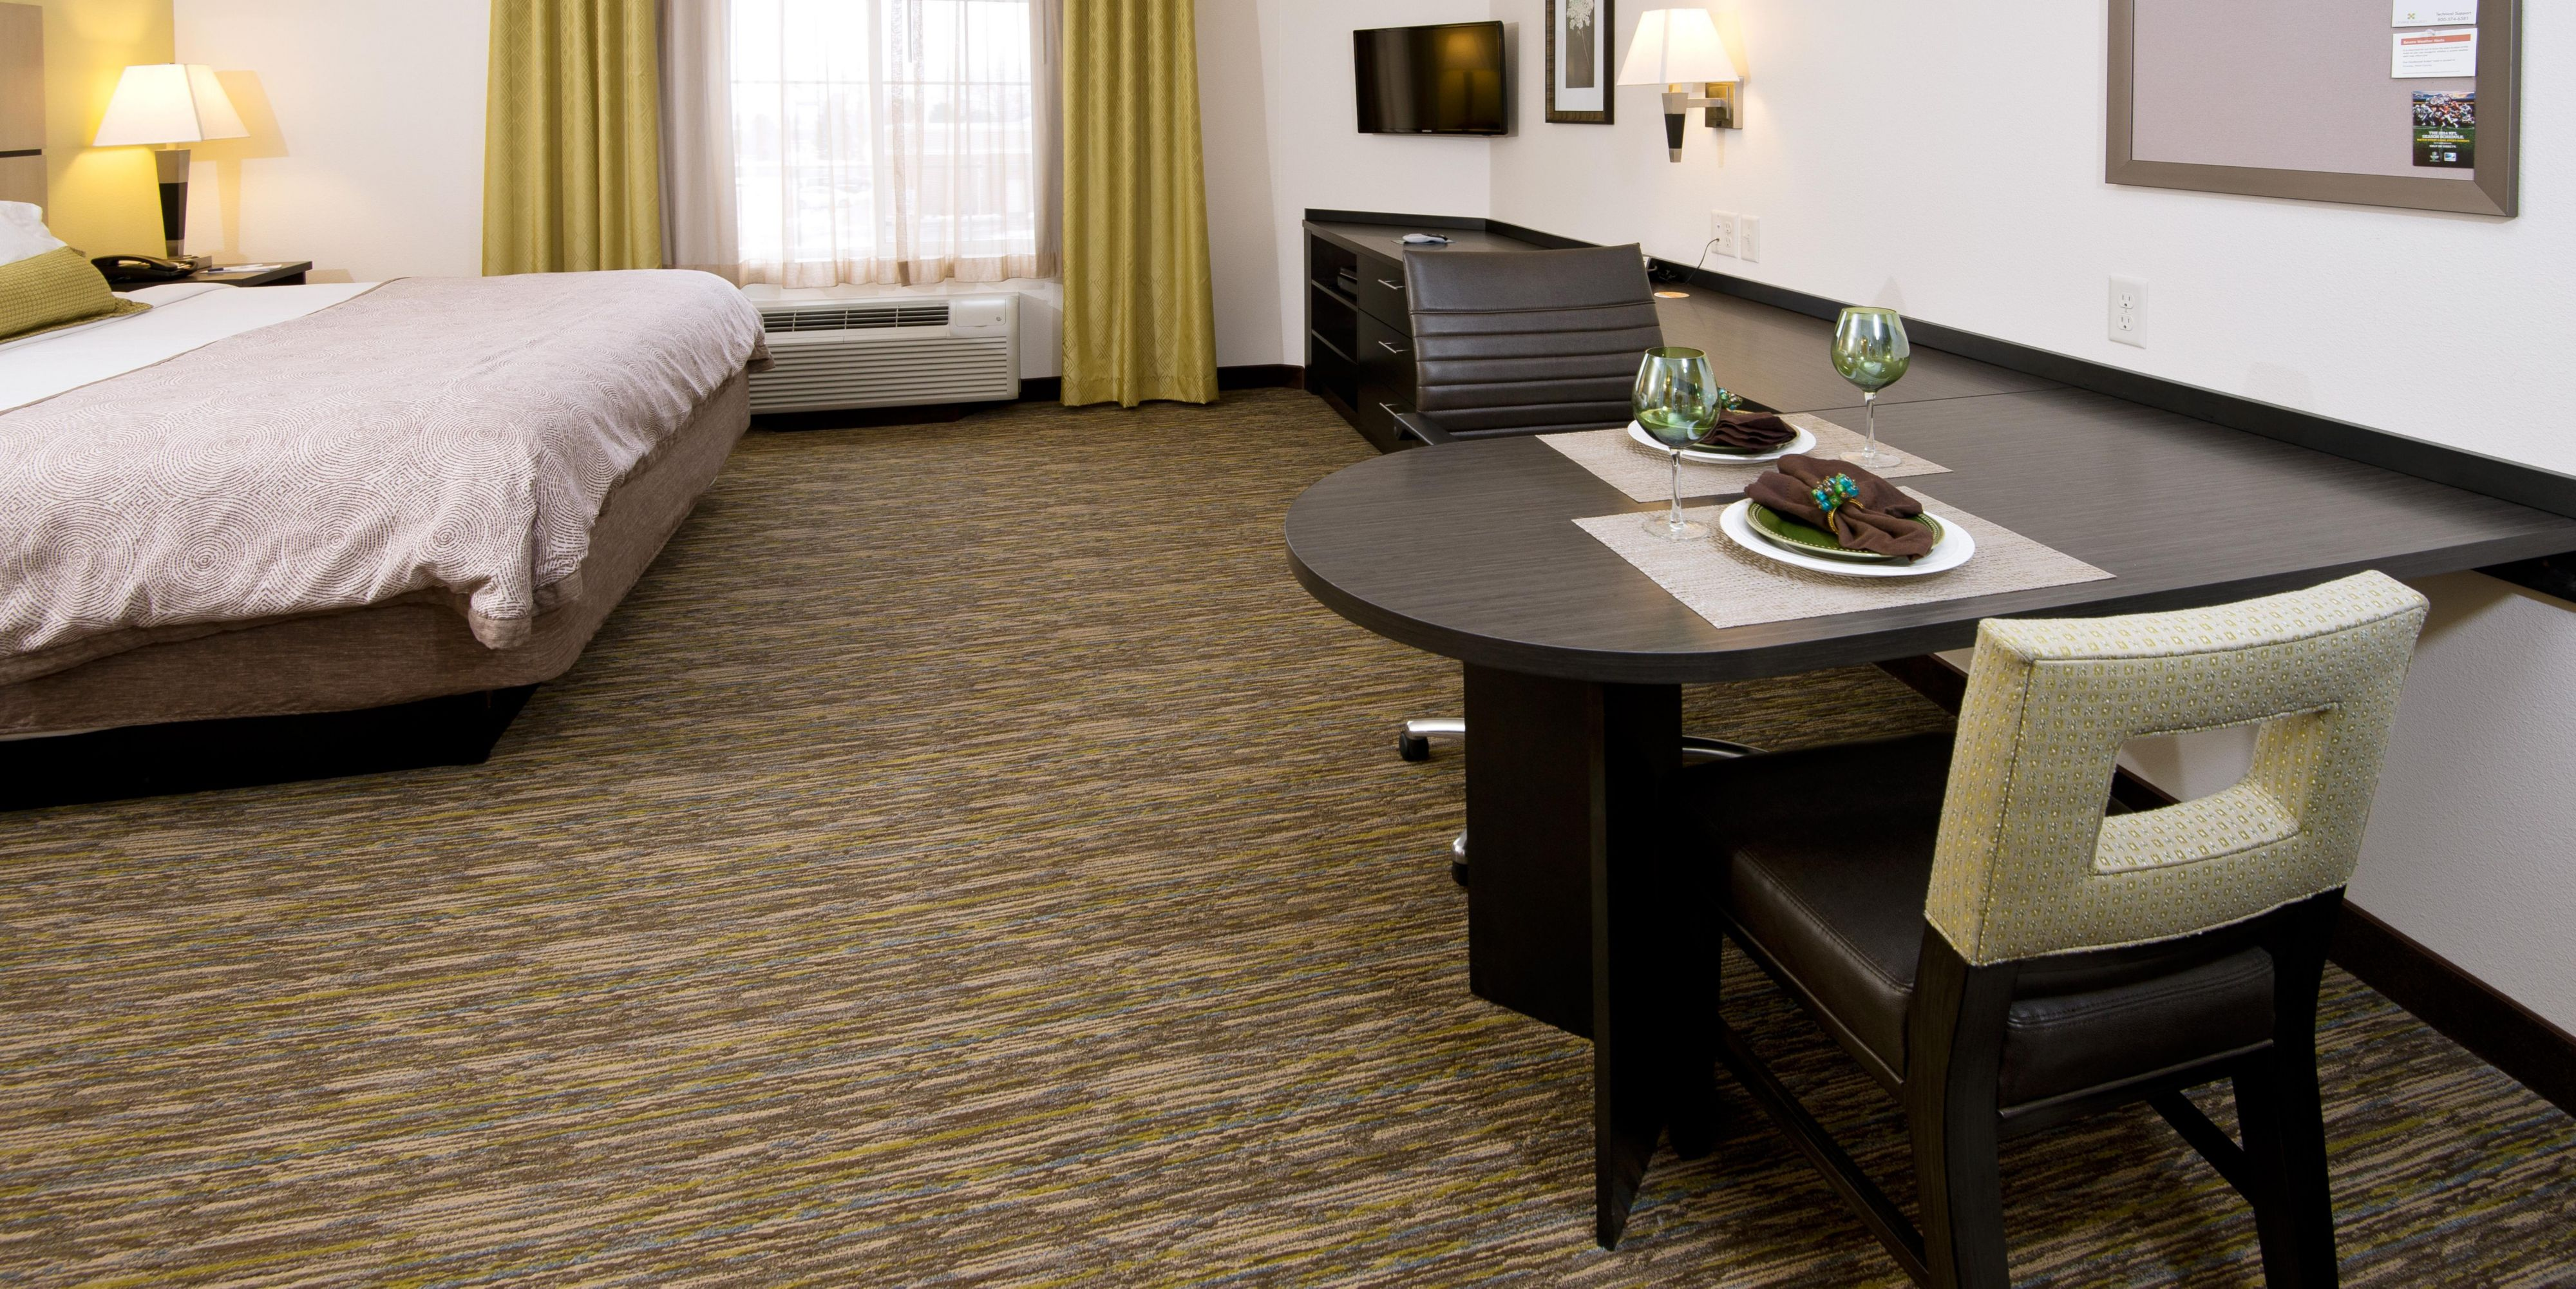 Greeley Hotels: Candlewood Suites Greeley   Extended Stay Hotel In Greeley,  Colorado